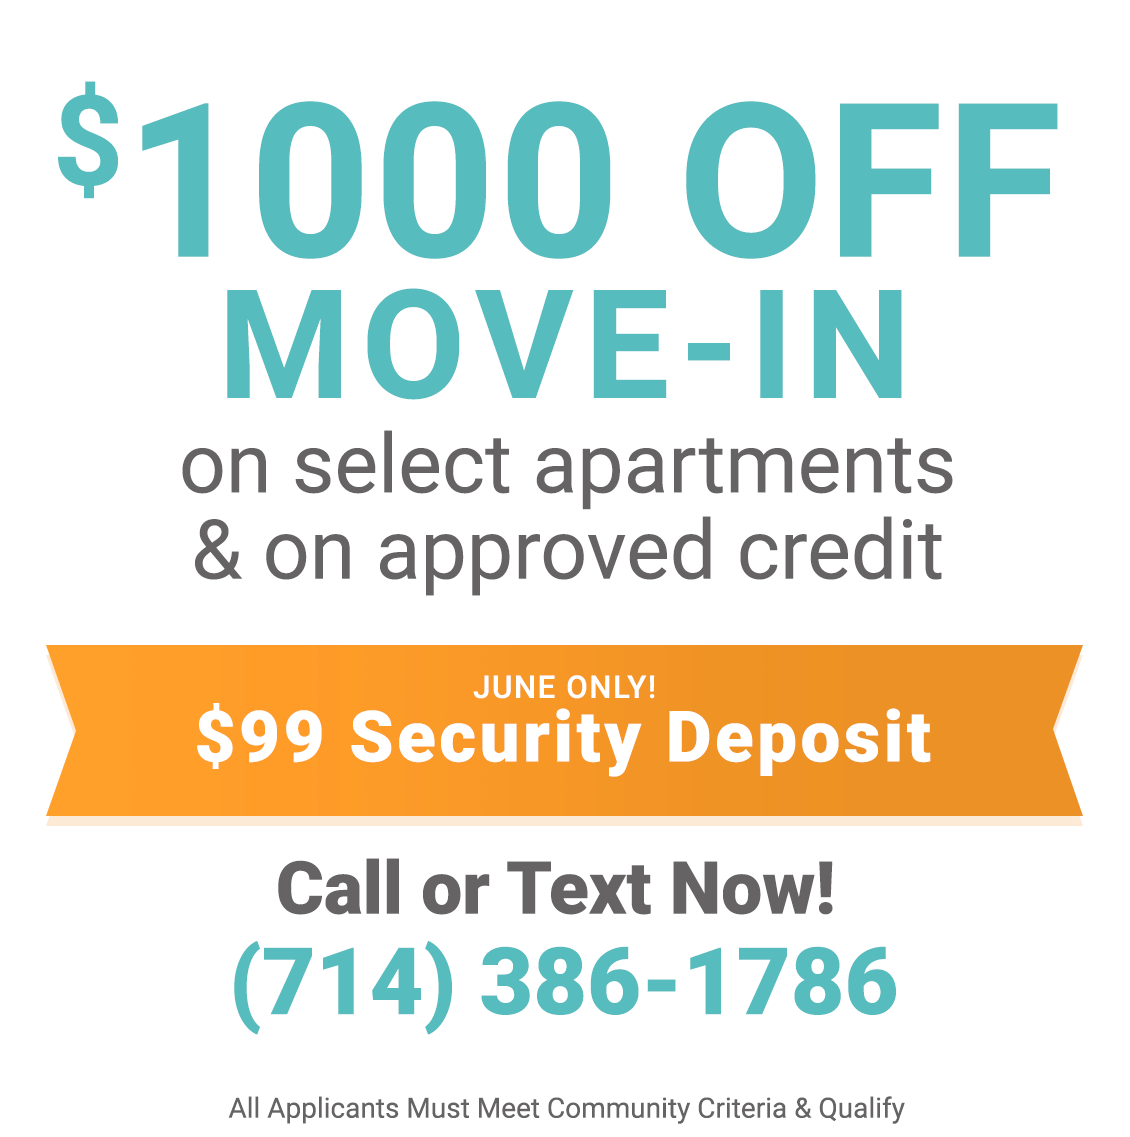 $1000 off move-in on select apartments & on approved credit